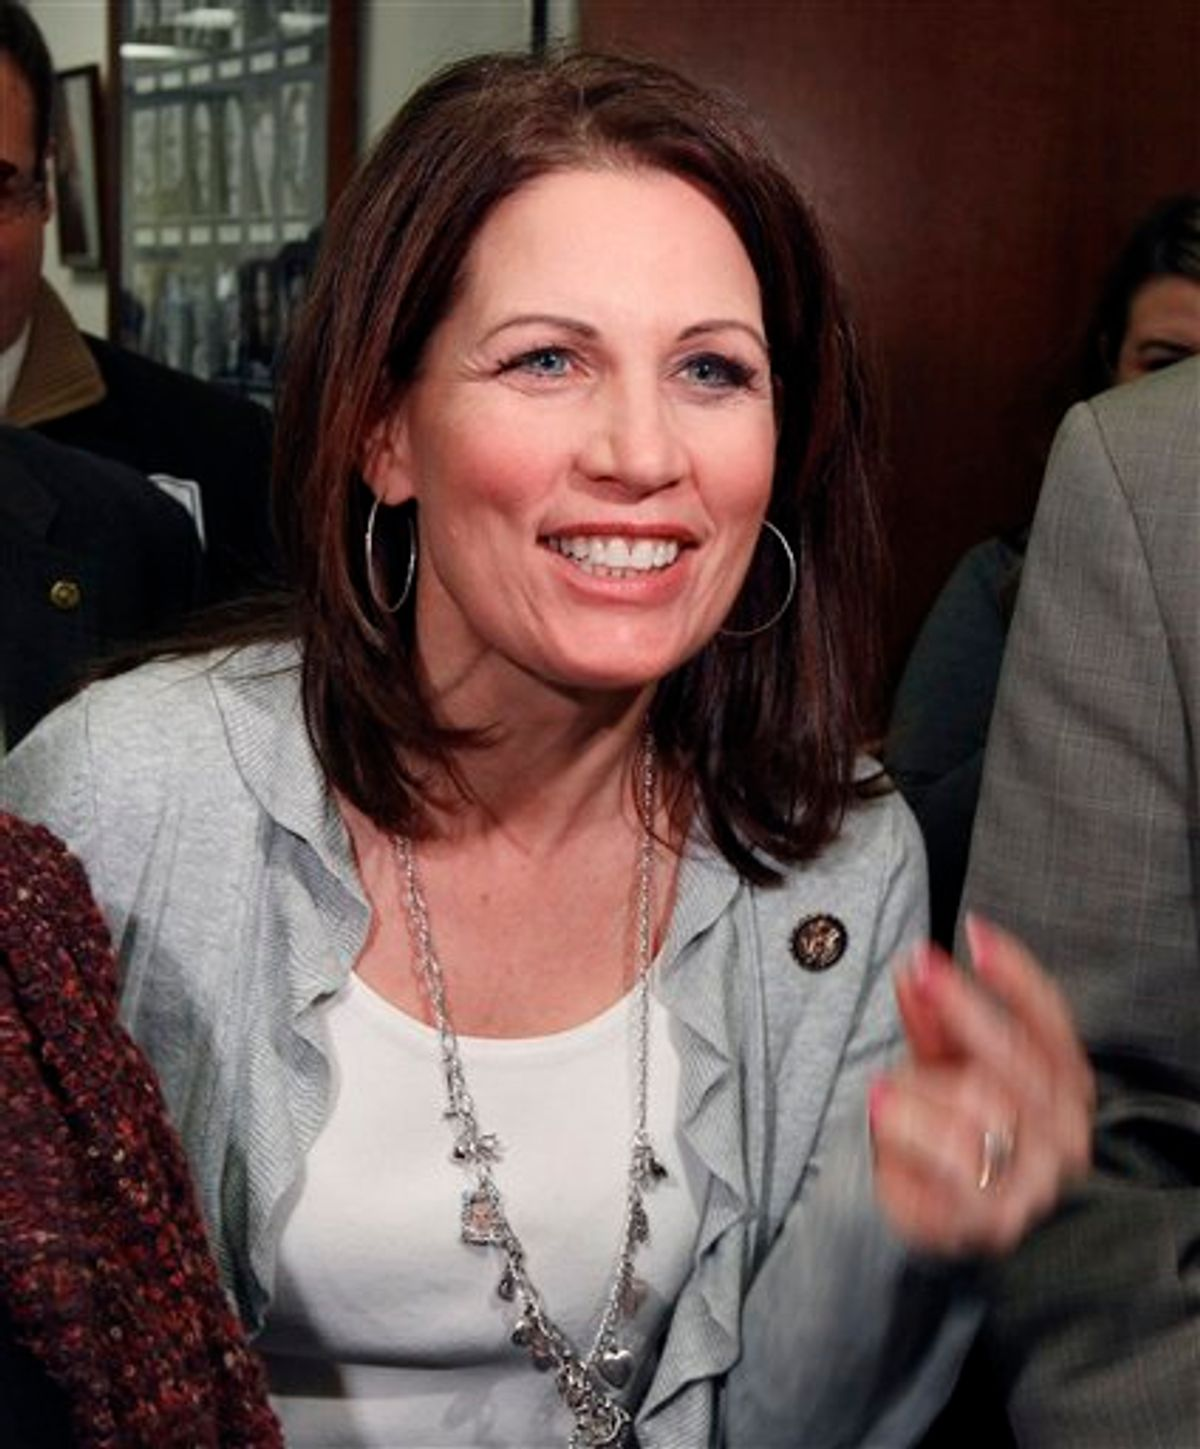 """Rep. Michele Bachmann, R-Minn., speaks during the """"Hot Dish Off,"""" cooking contest in the office of Sen. Al Franken, D-Minn., on Capitol Hill in Washington, Wednesday, Jan. 26, 2011. (AP Photo/Alex Brandon) (AP)"""